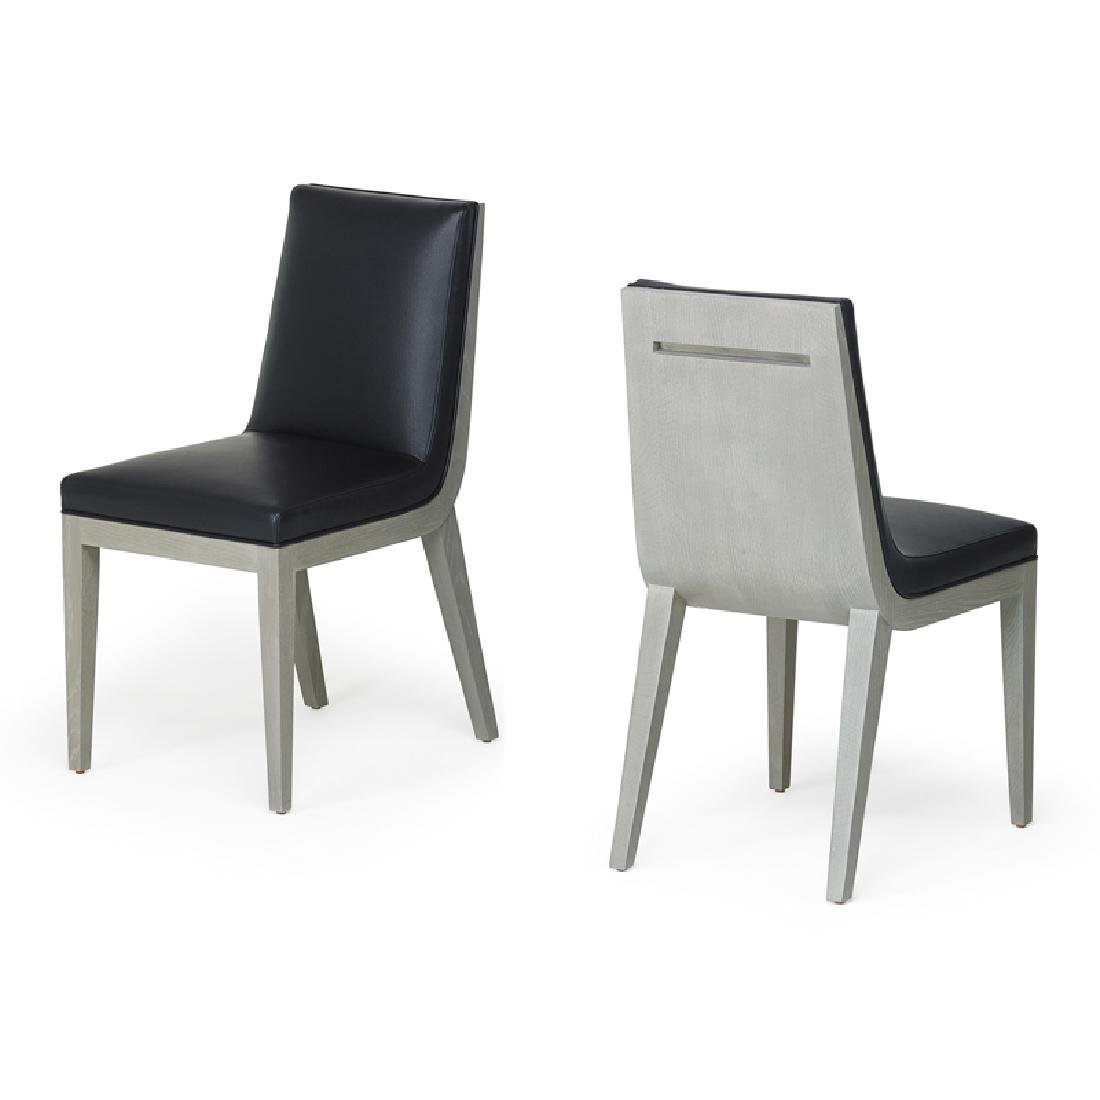 PATRICK NAGGAR; RALPH PUCCI Pair of side chairs